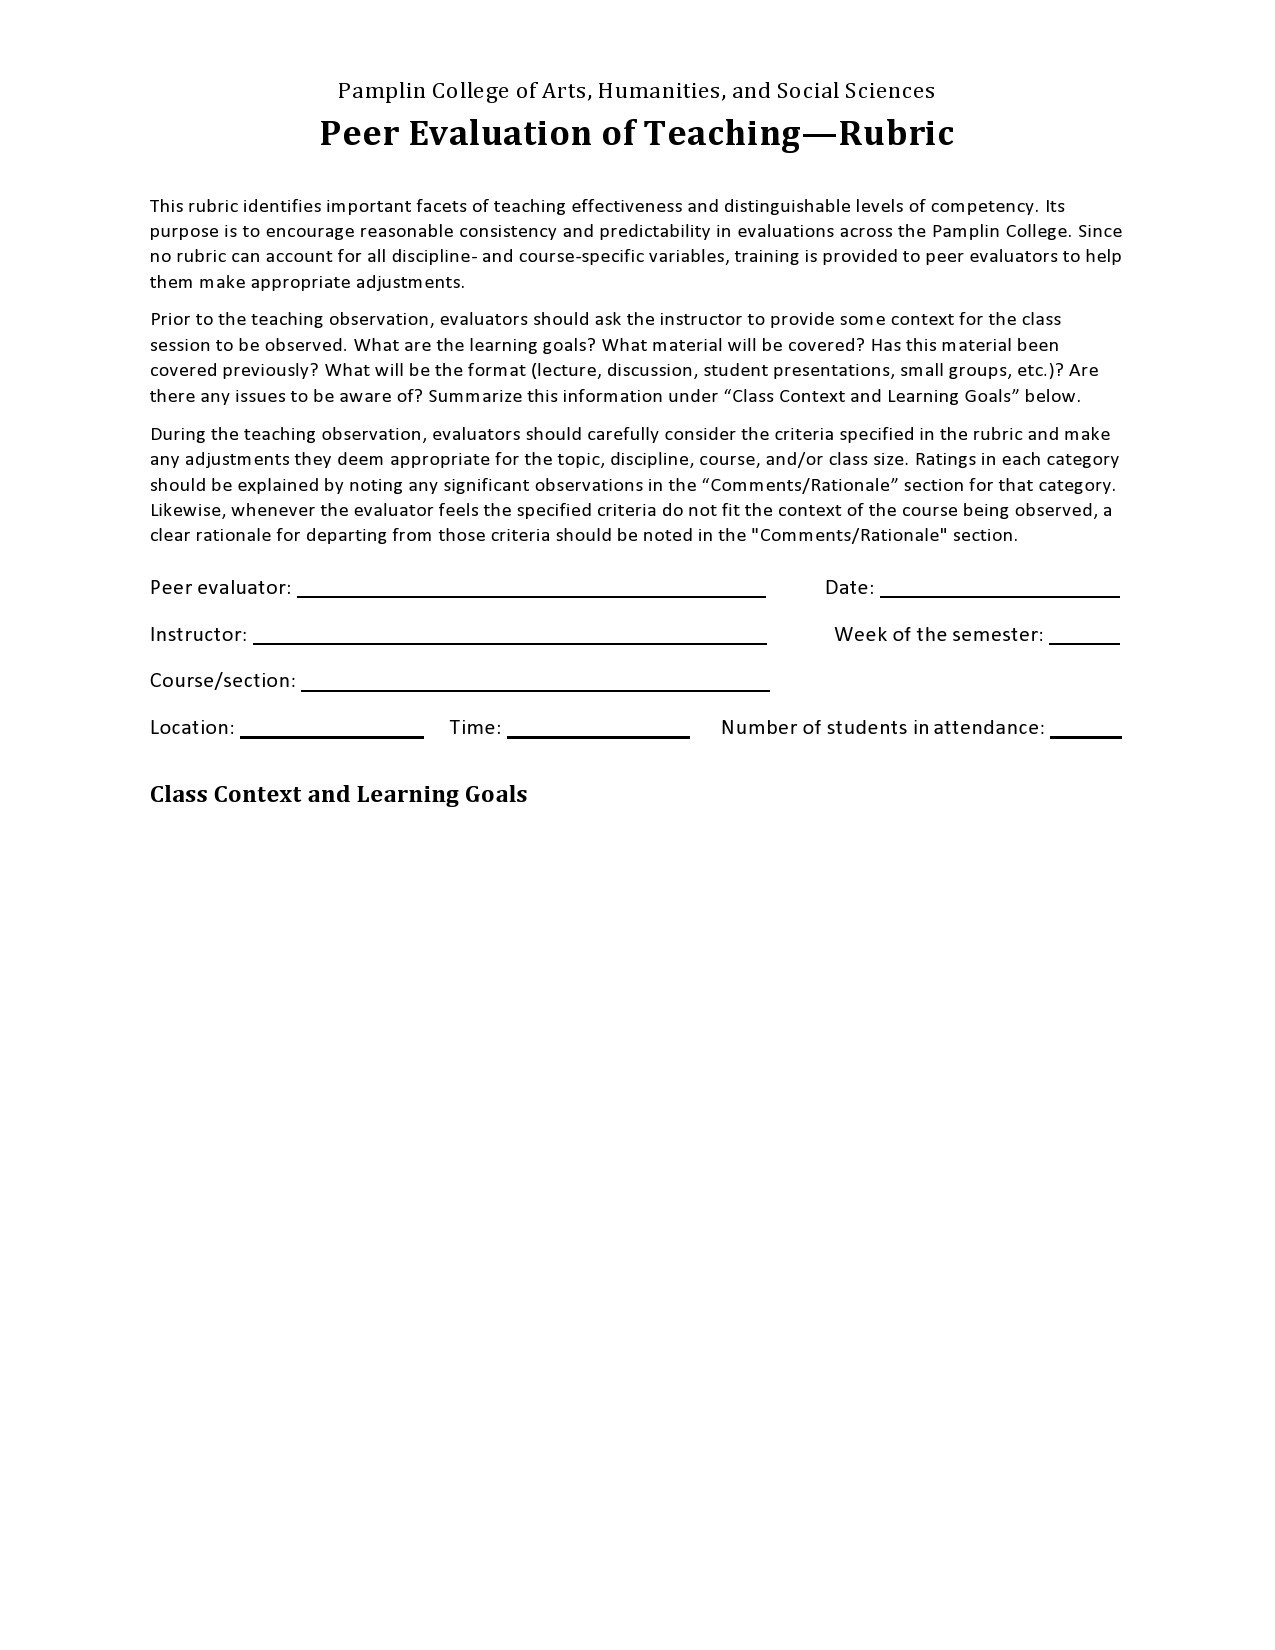 Free peer evaluation form 32